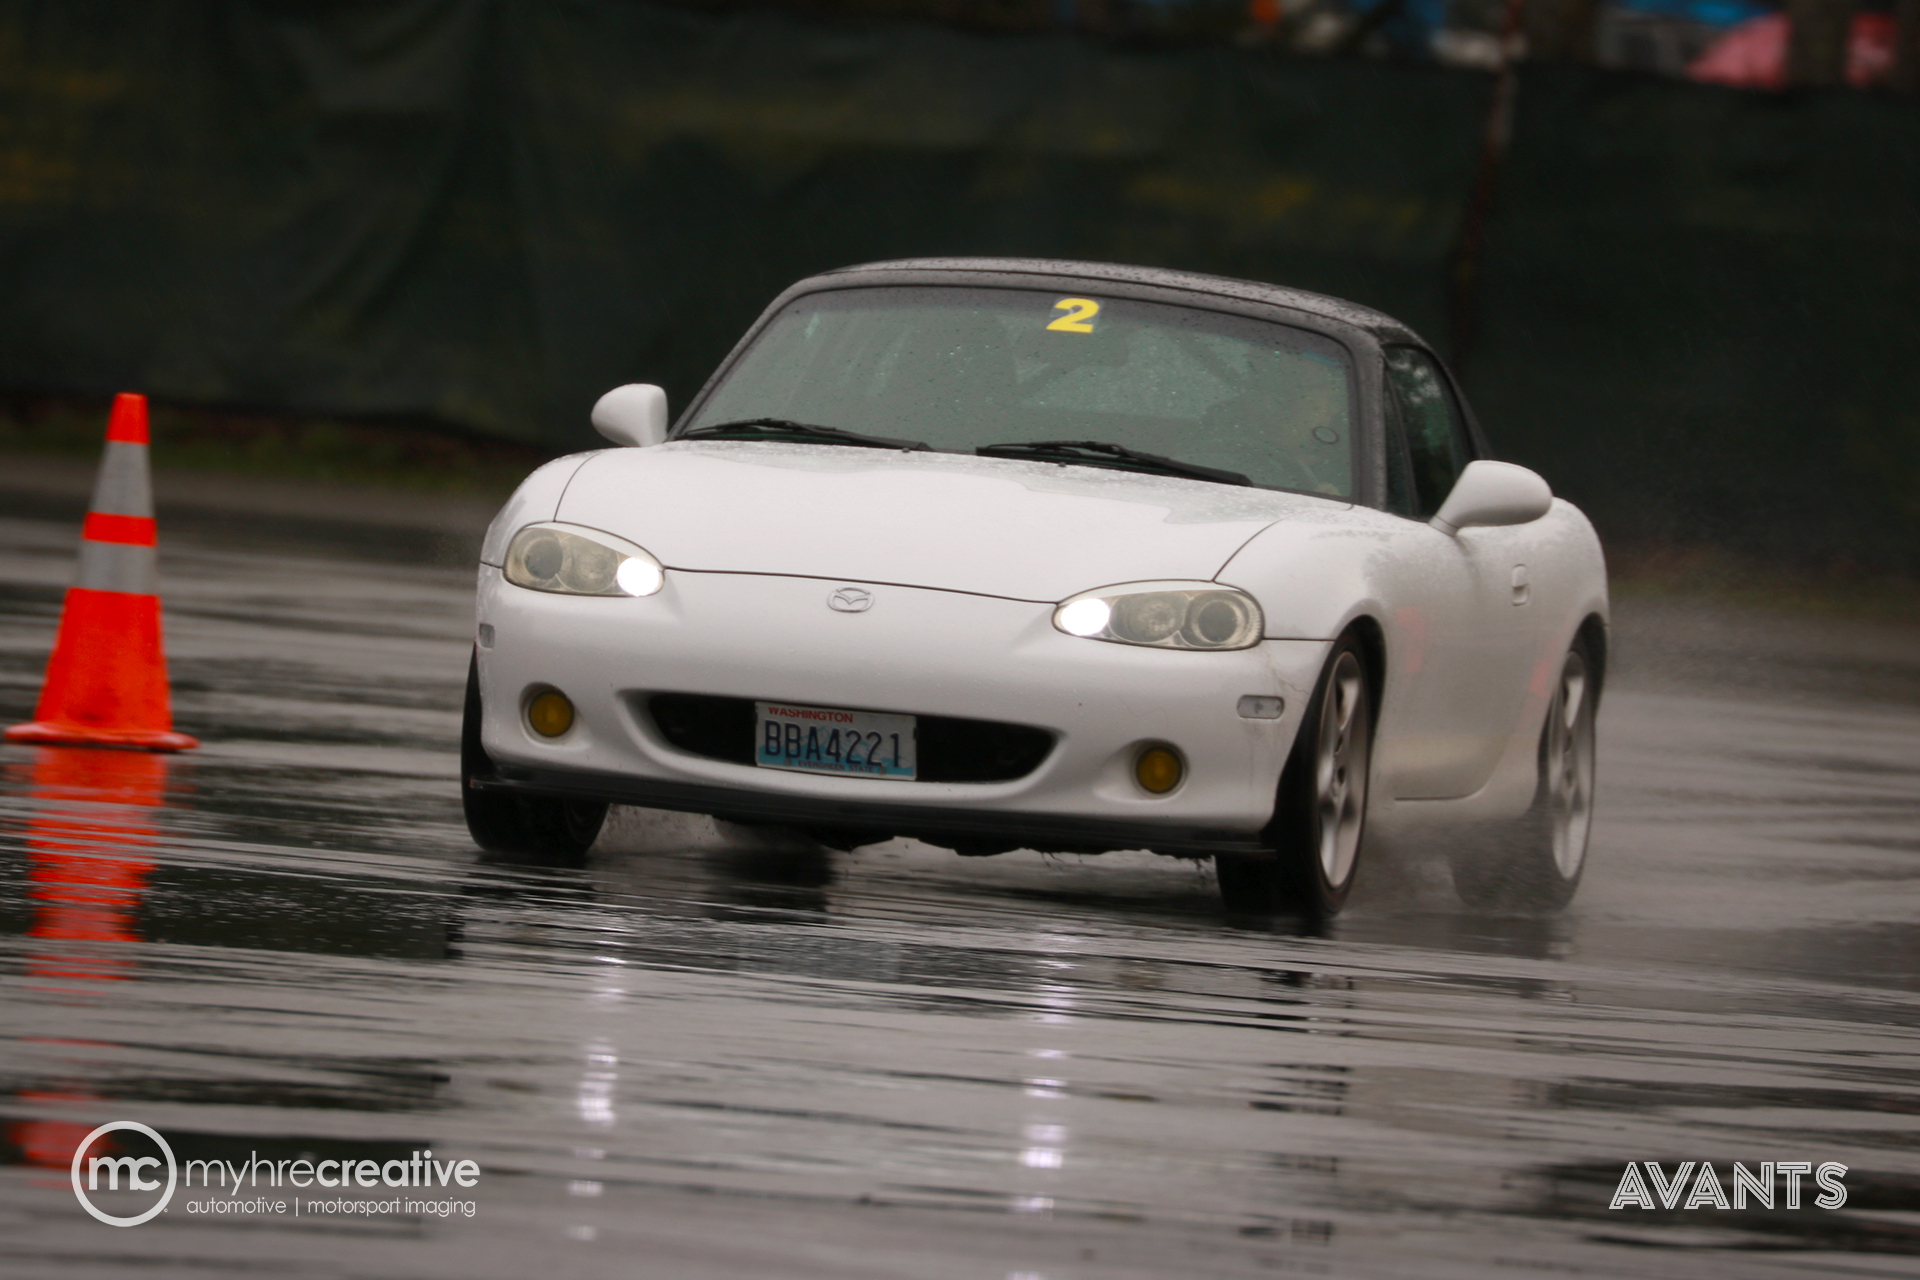 WMiata_MyhreCreative_Avants_04_w.jpg